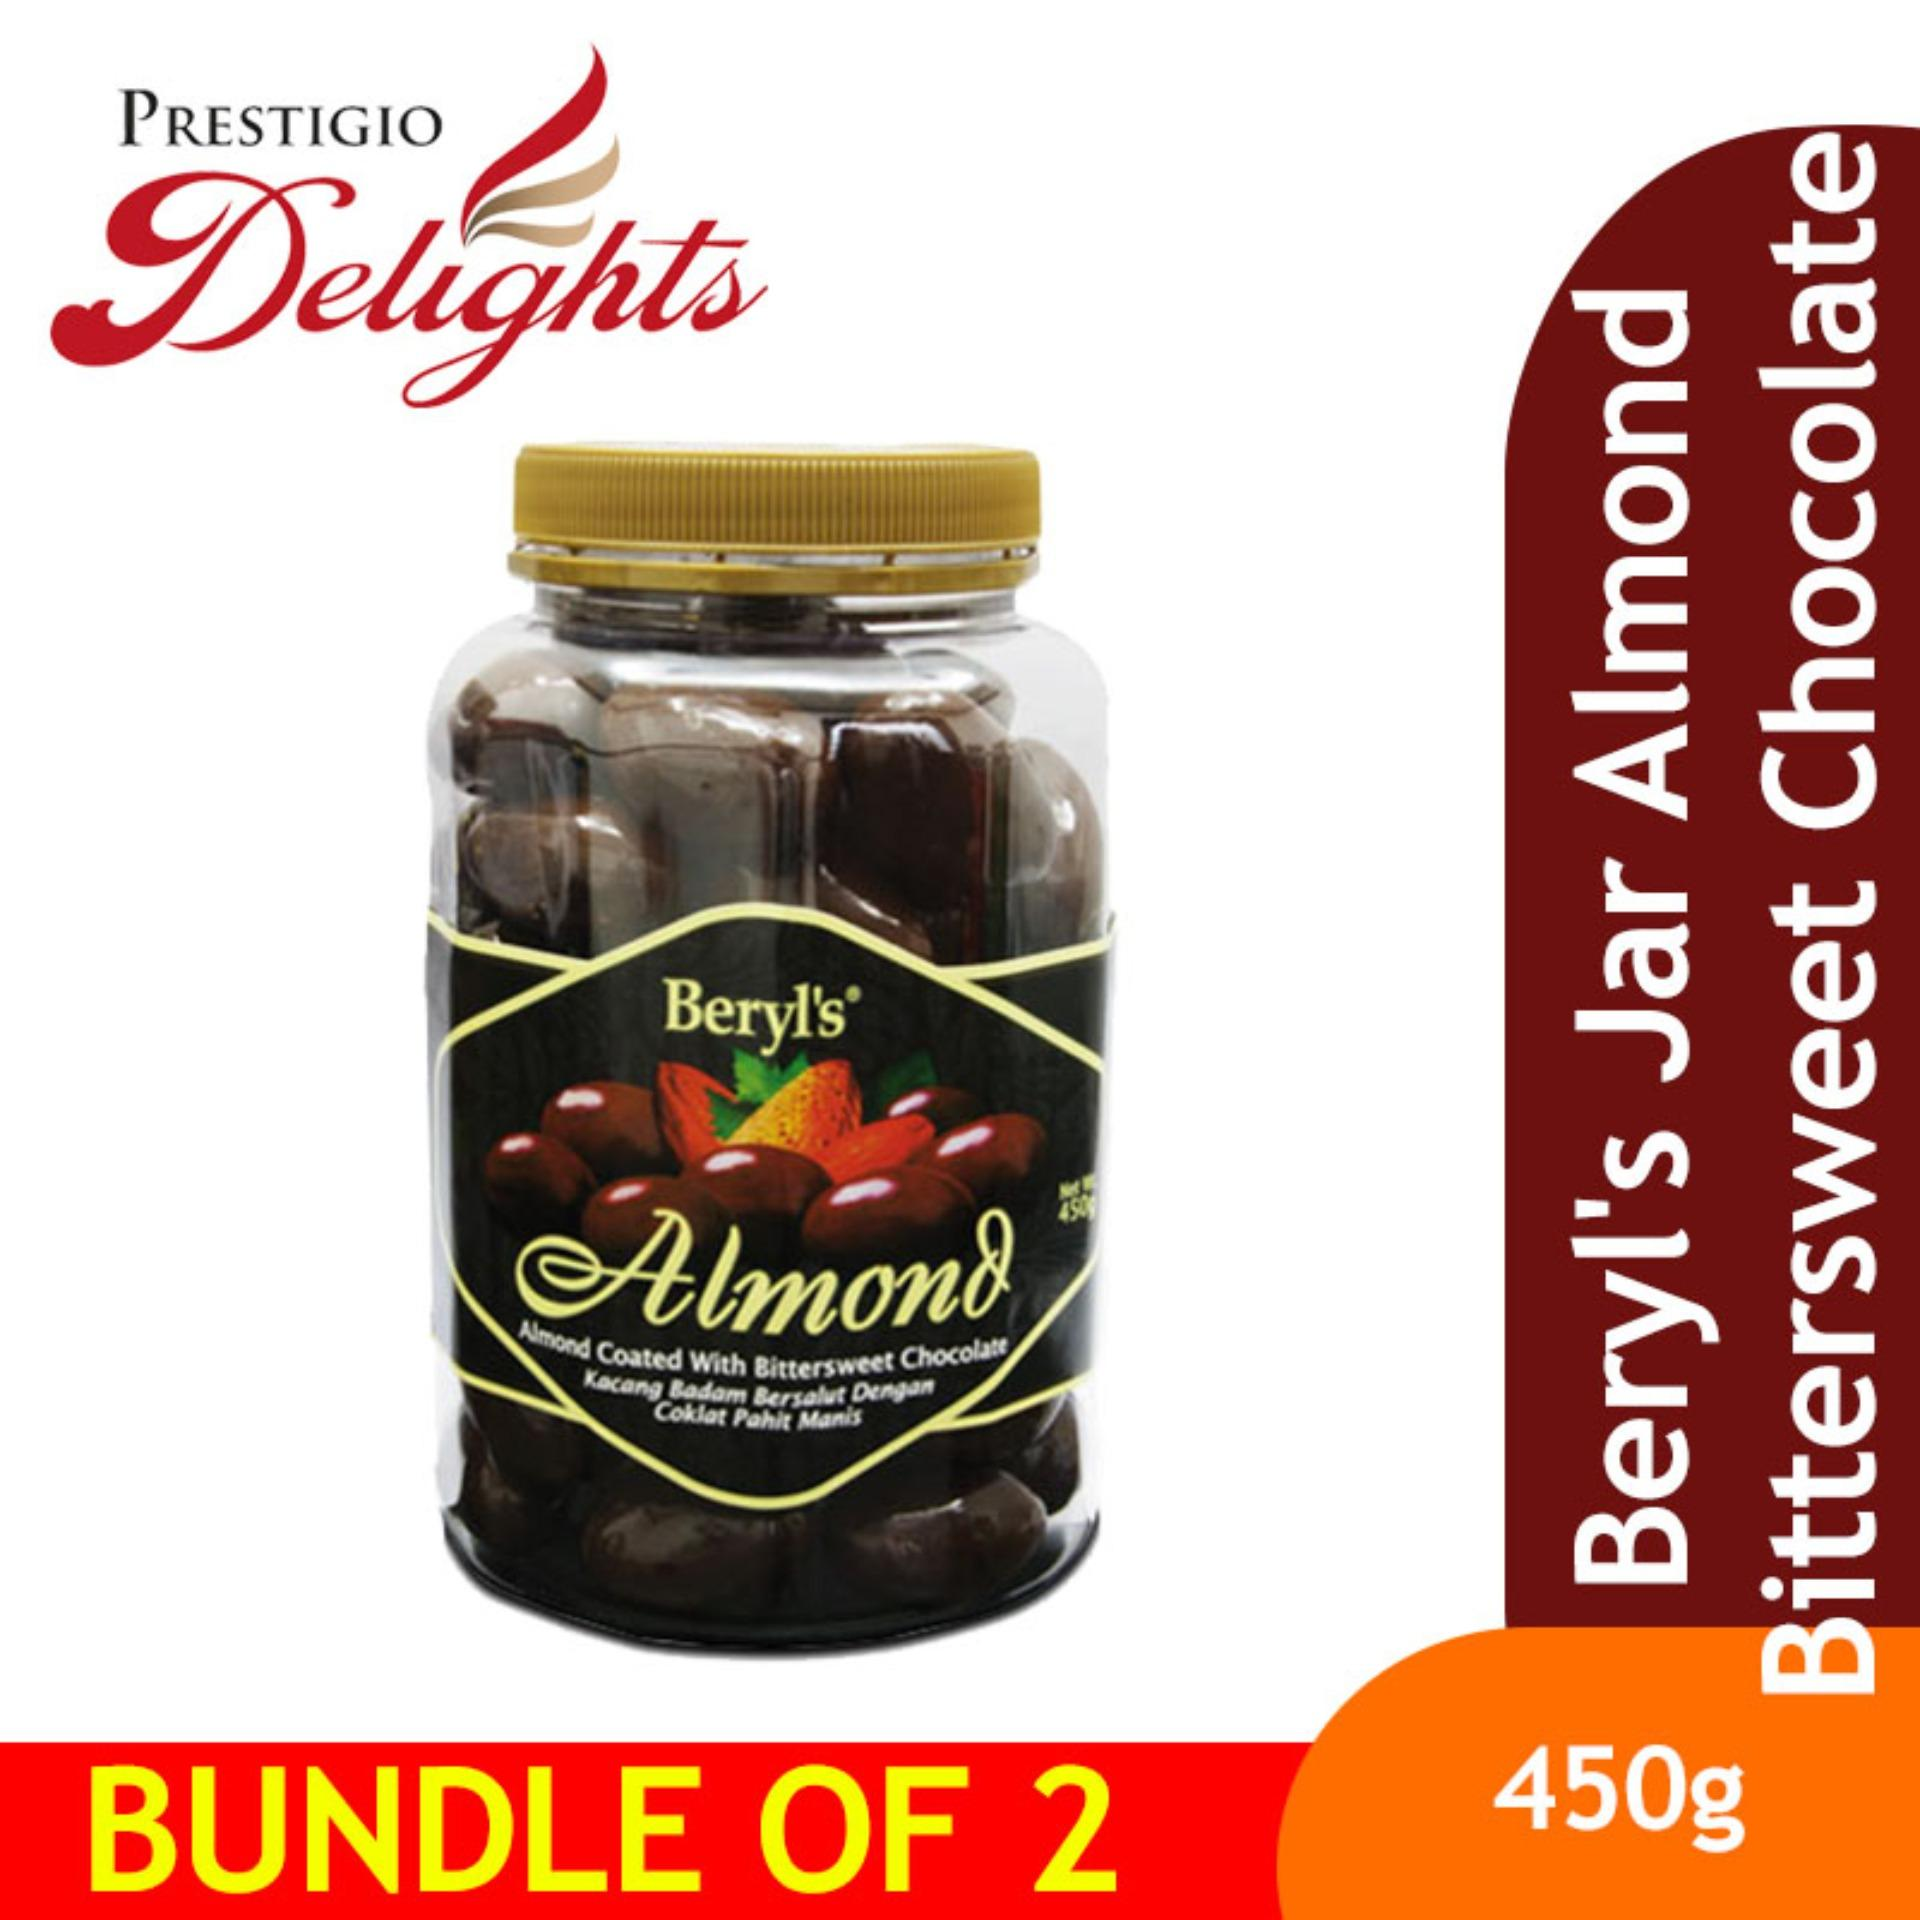 Beryls Jar Almond Bittersweet Chocolate Bundle Of 2 By Prestigio Delights.